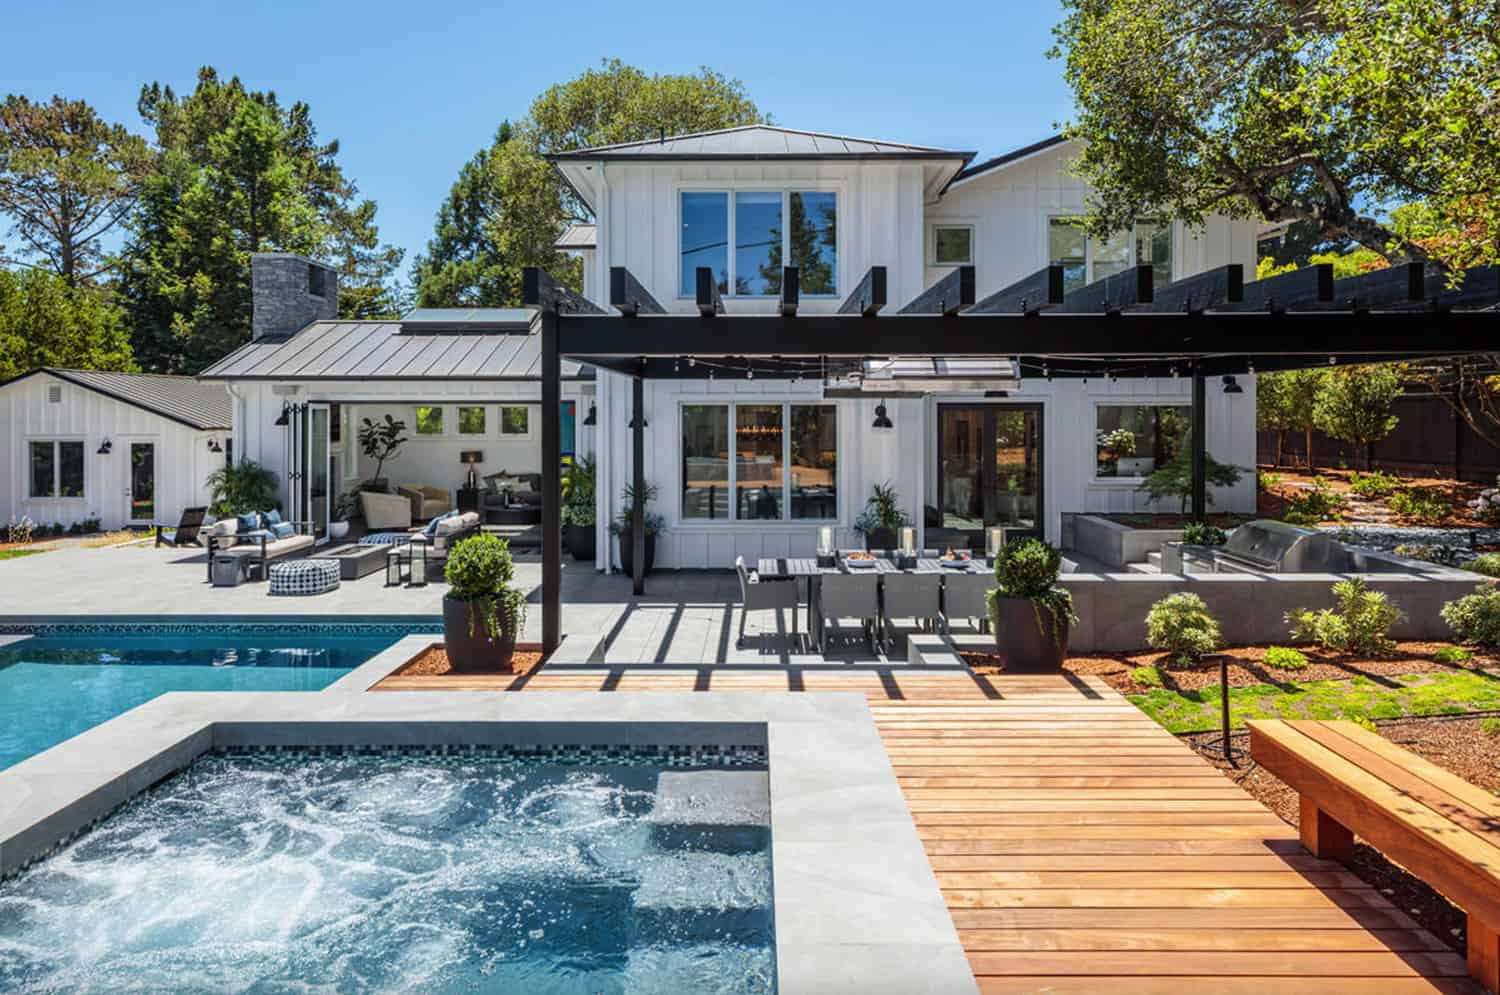 traditional-home-backyard-swimming-pool-and-deck